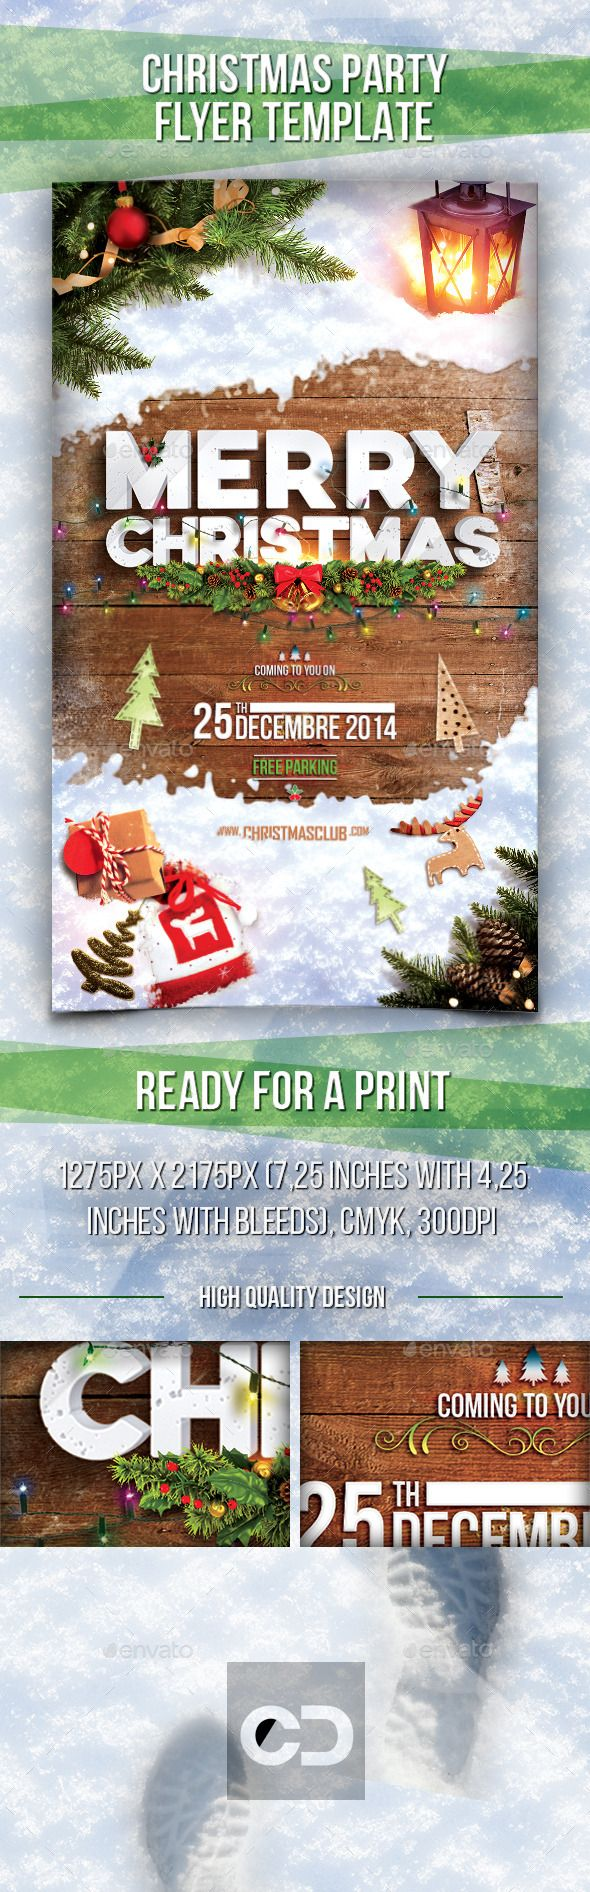 Christmas Party Flyer Template PSD | #christmasflyer #christmaspartyflyer | Buy and Download: http://graphicriver.net/item/christmas-party-flyer/9514266?ref=ksioks